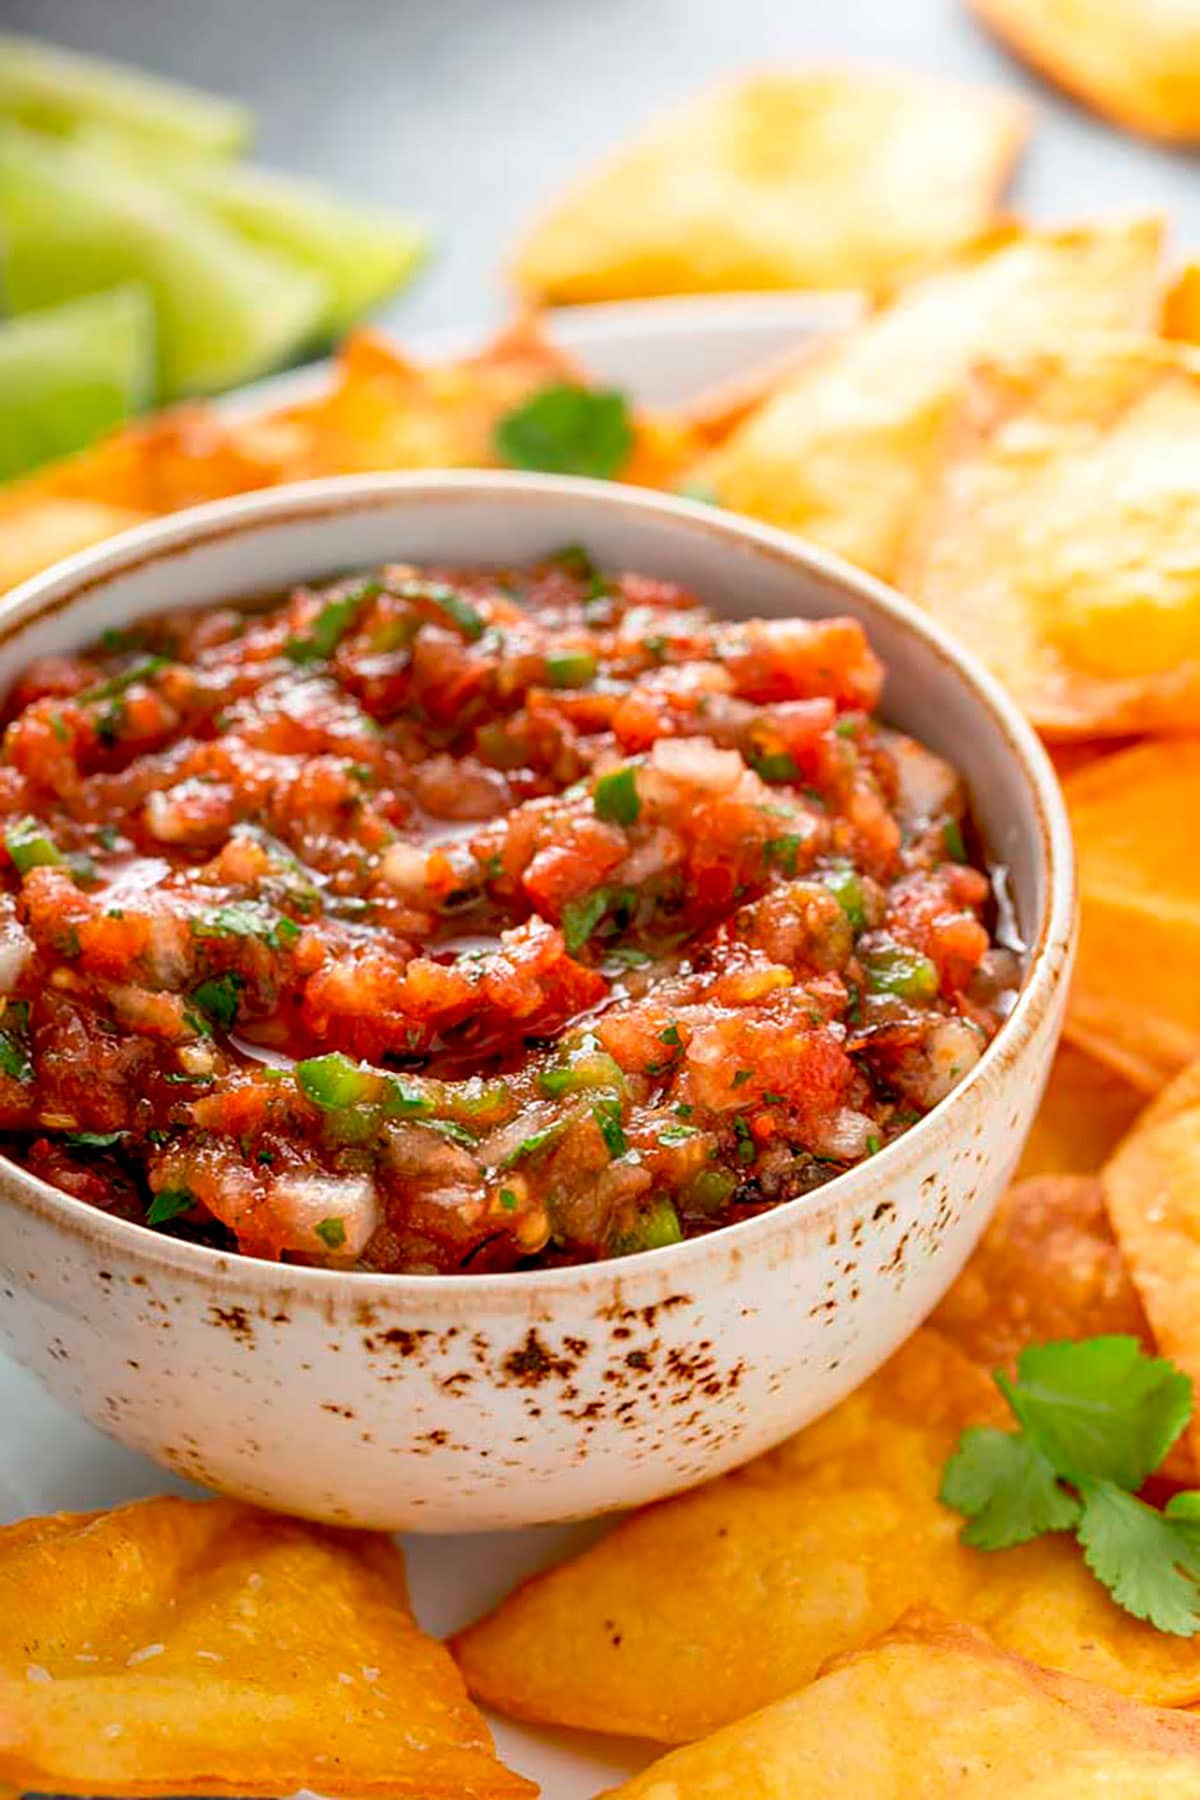 A bowl of Mexican salsa with chips